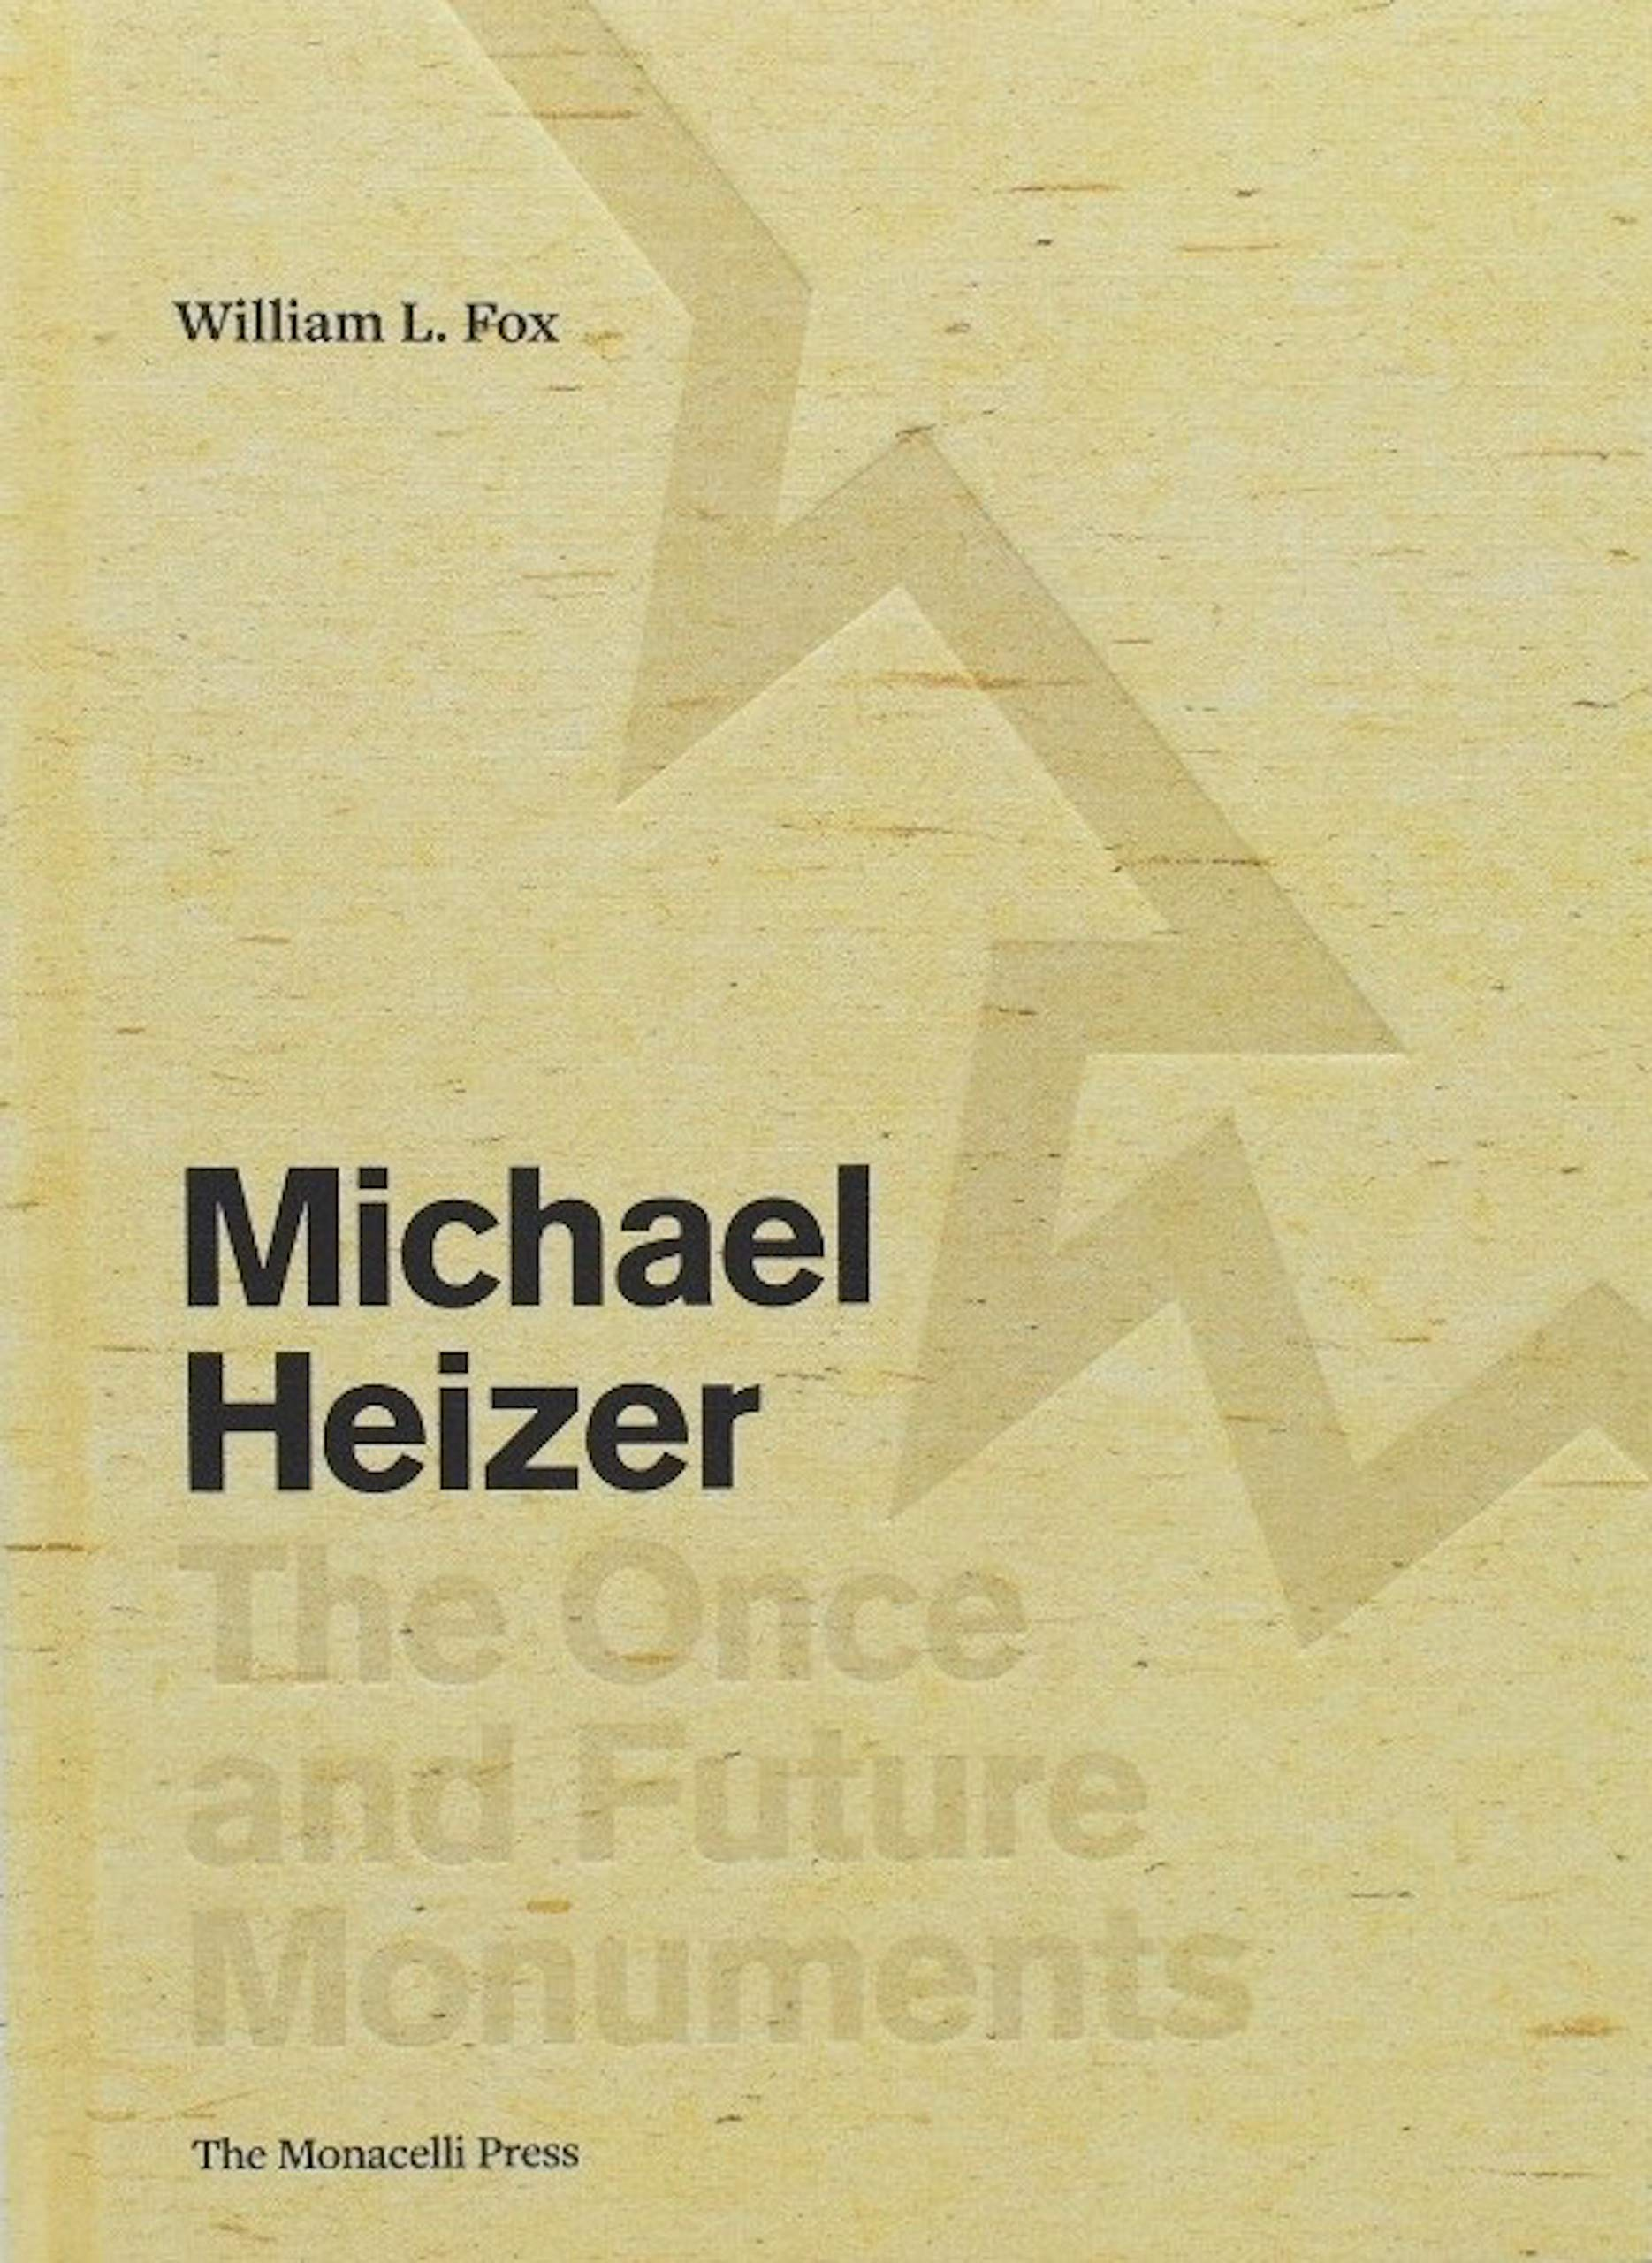 Michael Heizer: The Once and Future Monuments by The Monacelli Press